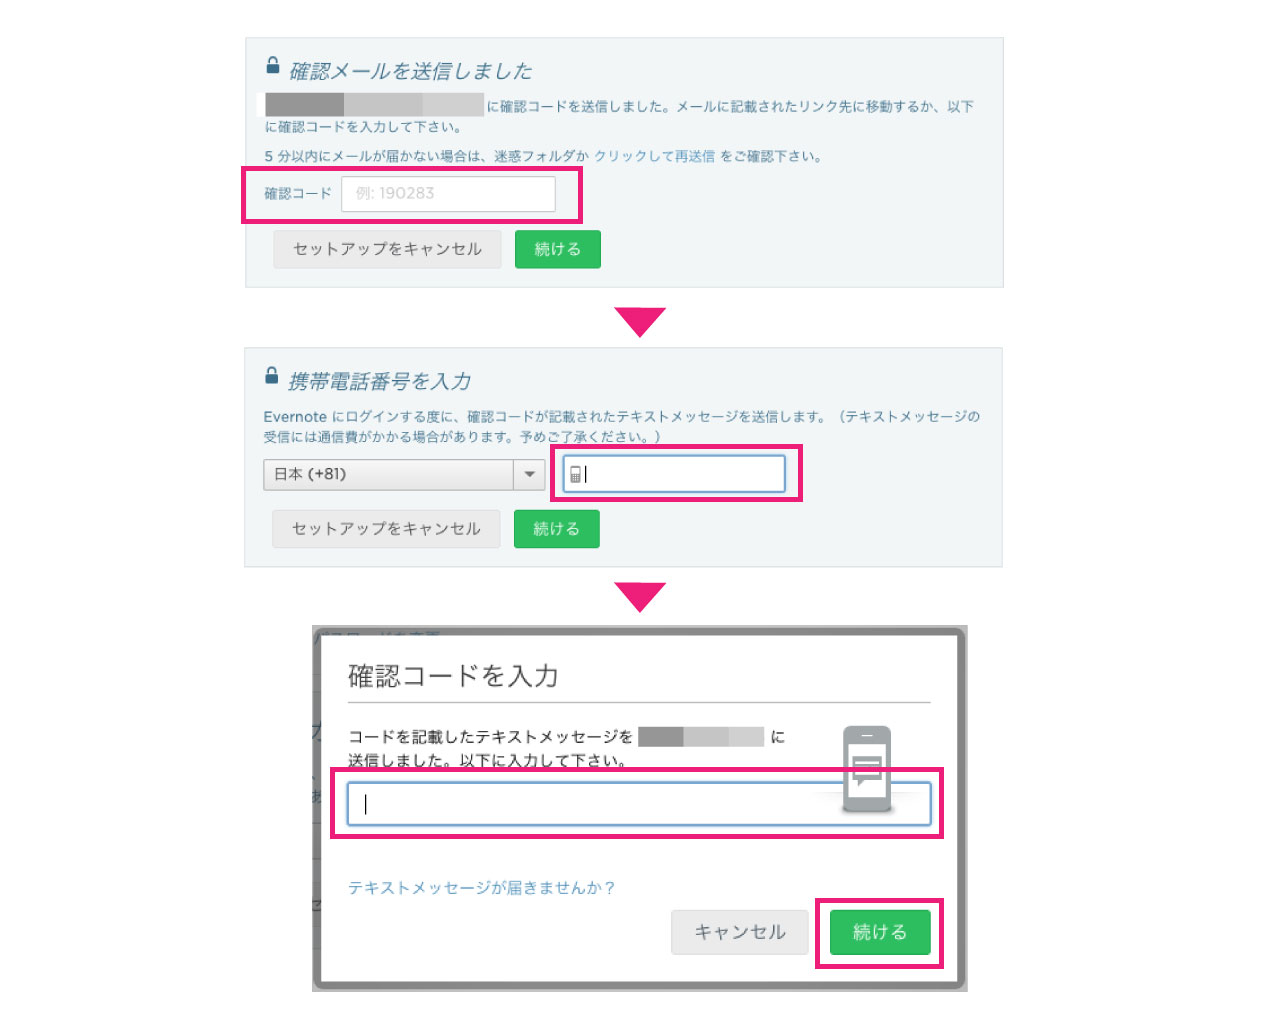 evernote-2step-authentication-3